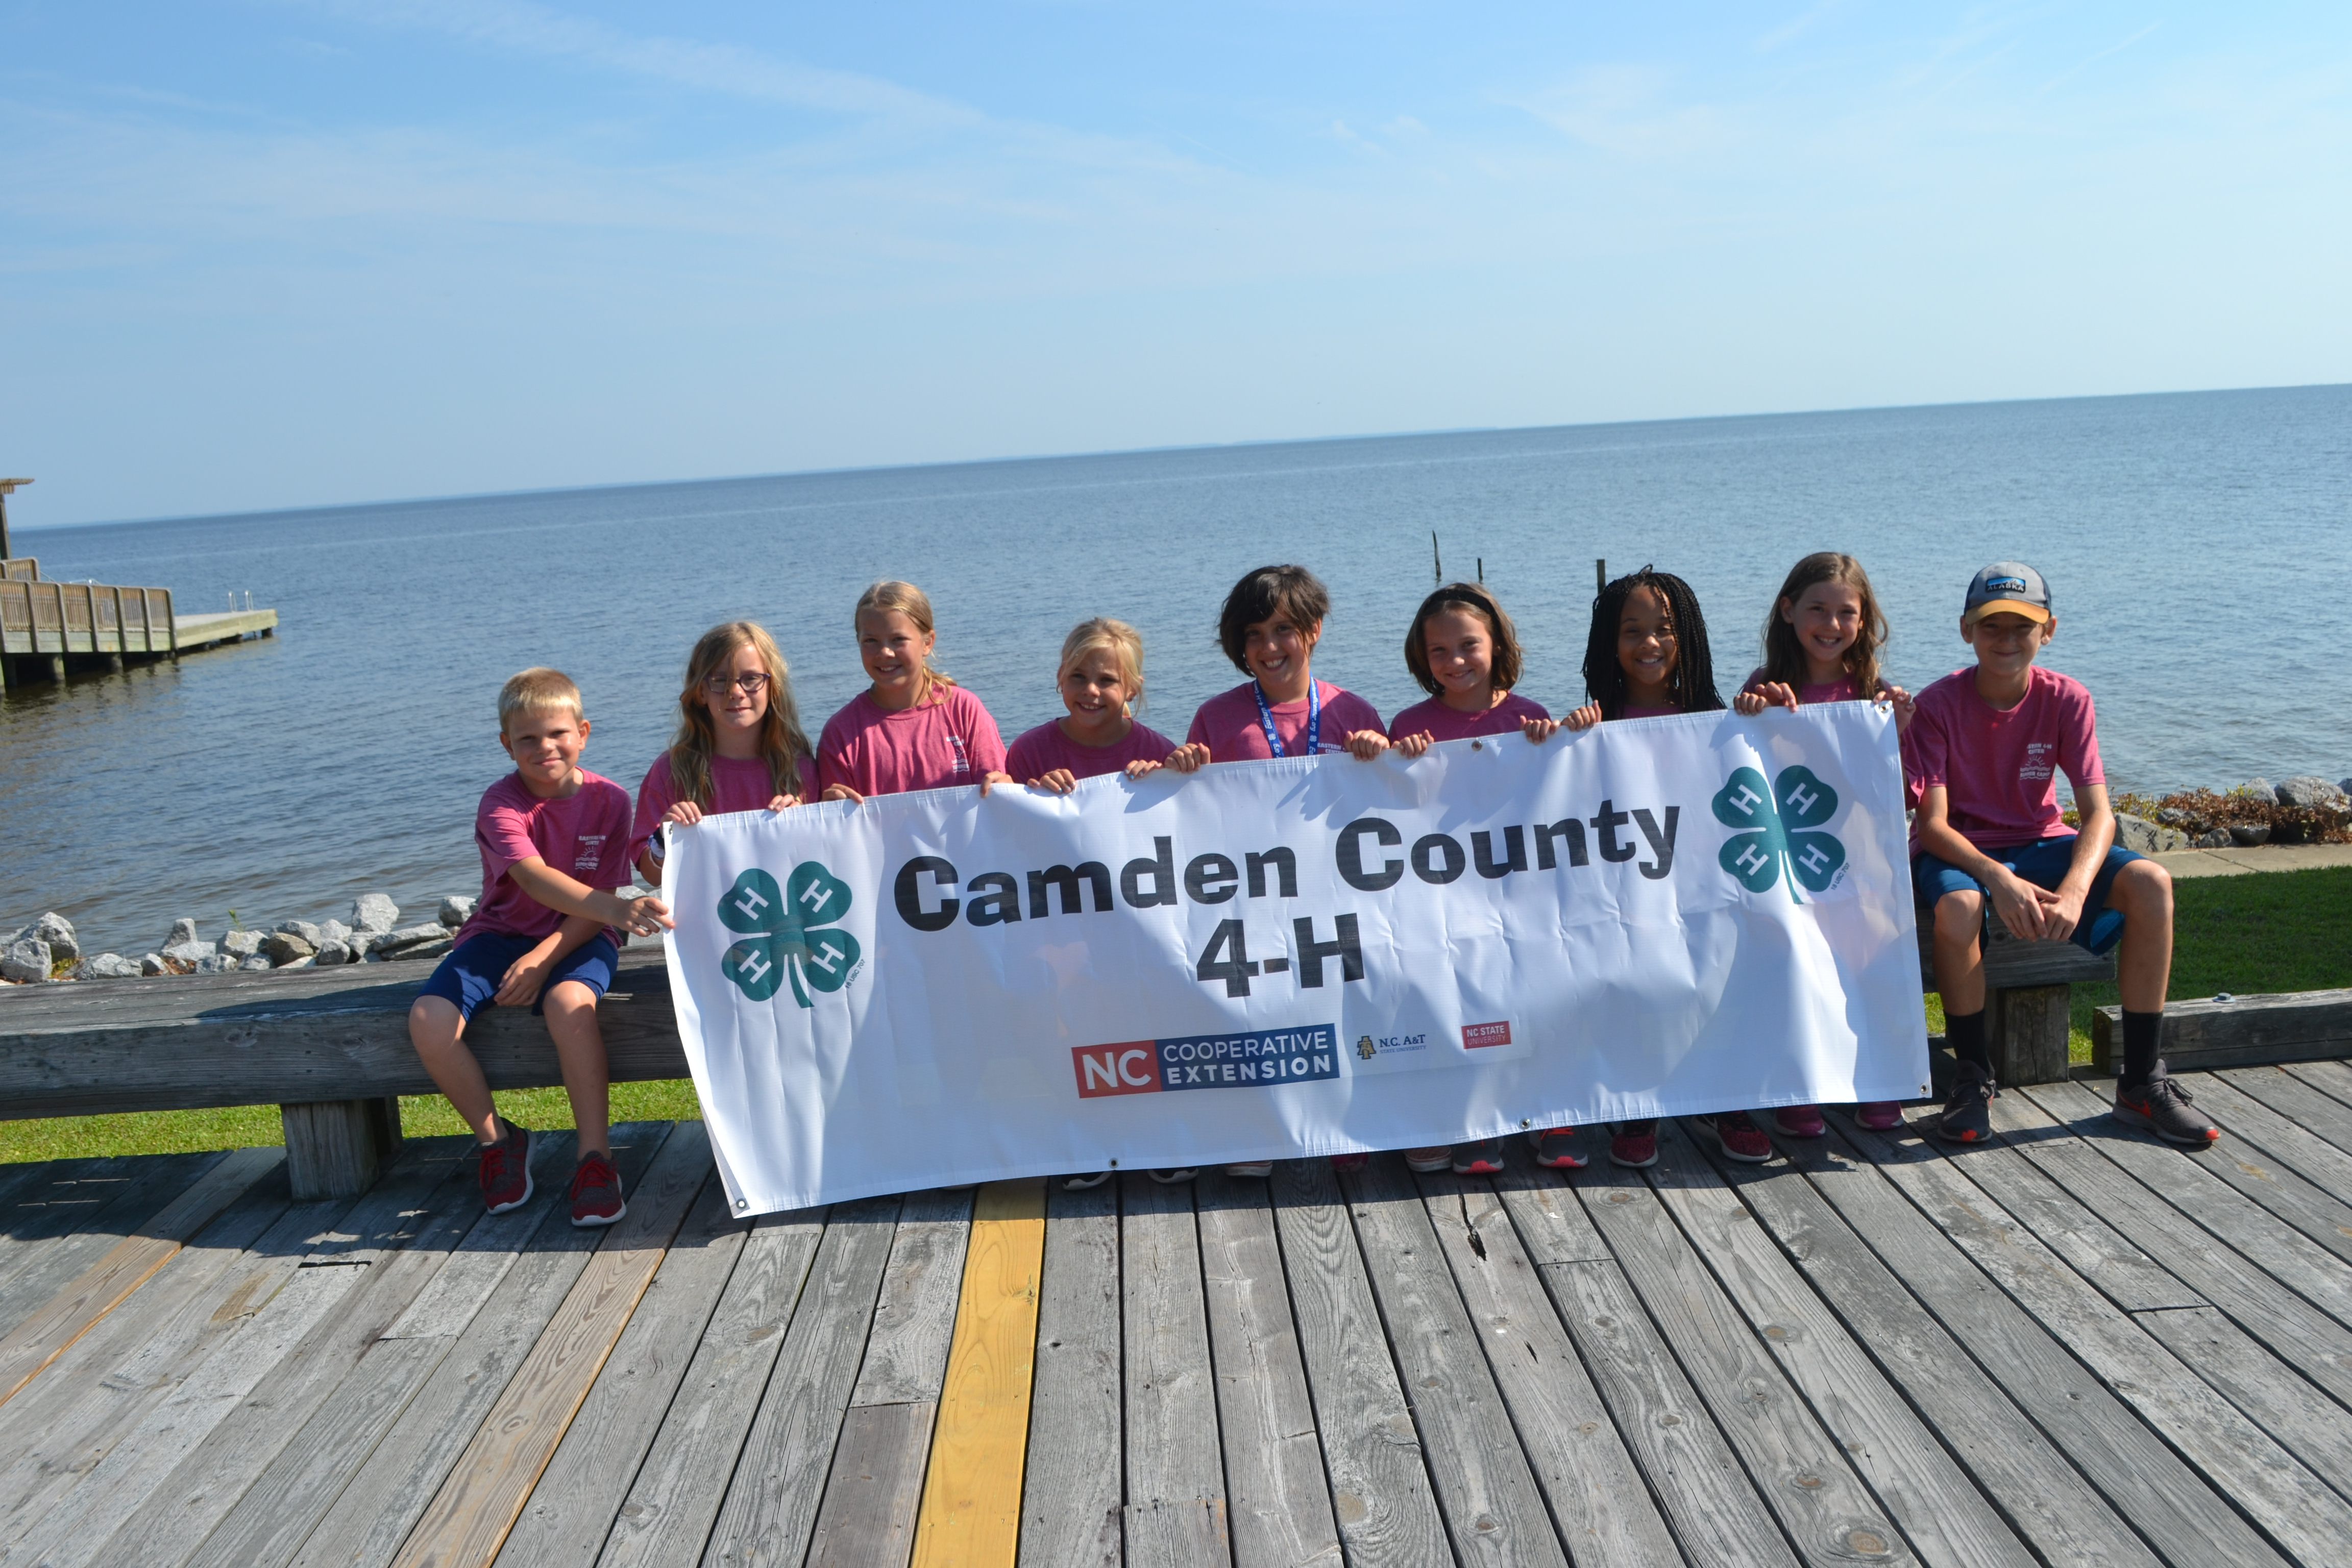 campers holding the Camden County 4-H banner